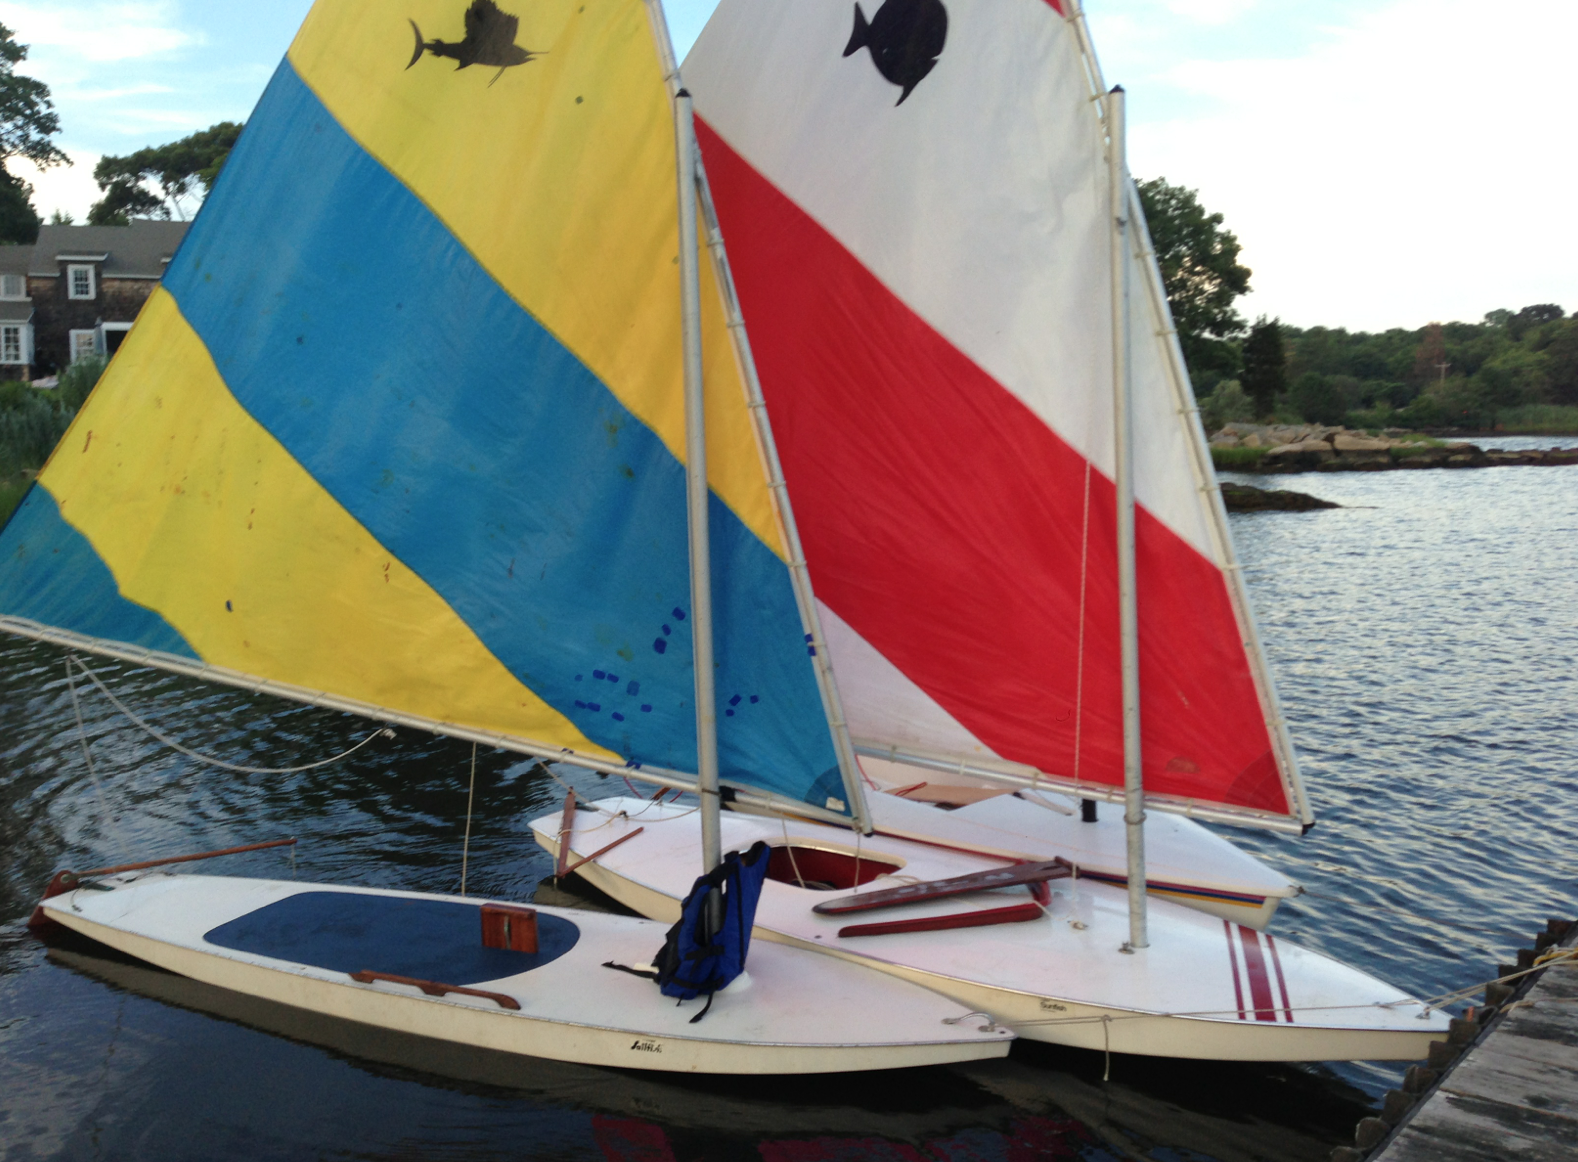 Launched, rigged and the sail is unfurled and ready to sail!